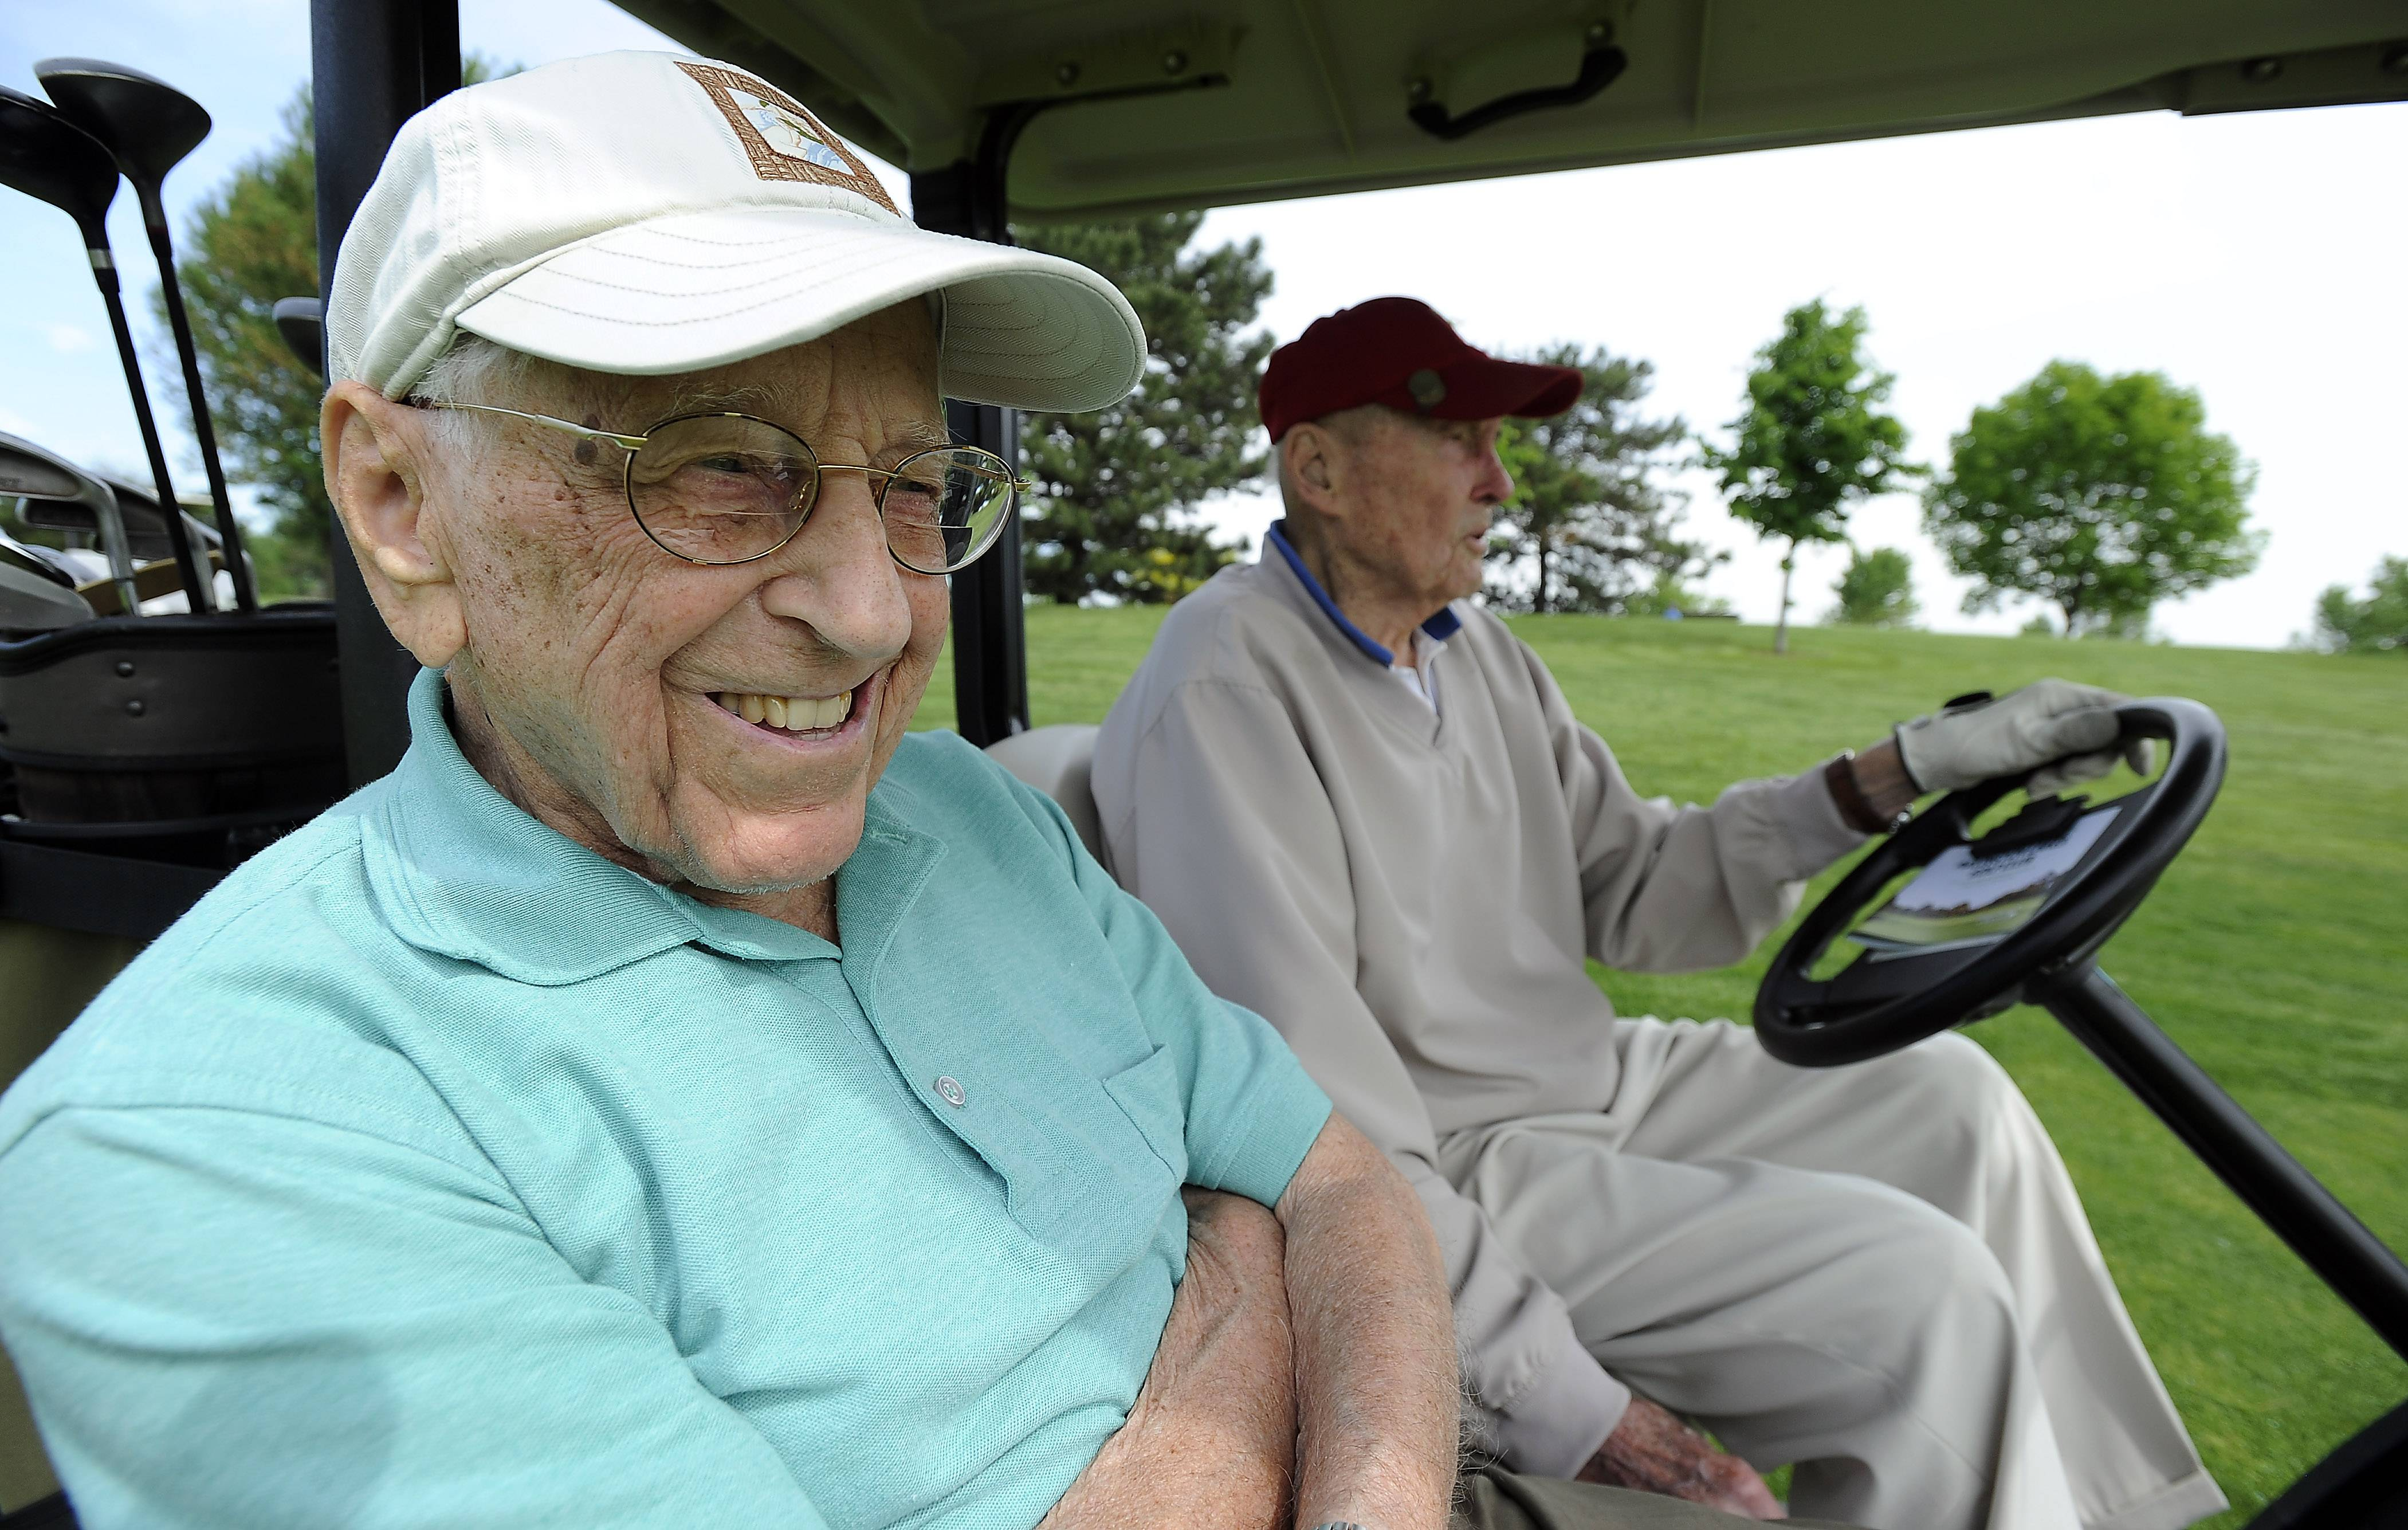 Agreeing to use a golf cart is the only concession to age made by golfers Dick Muhlethaler, left, 103, and Dick Breeden, 98. The pair golf every Tuesday and often score half their ages for nine holes.